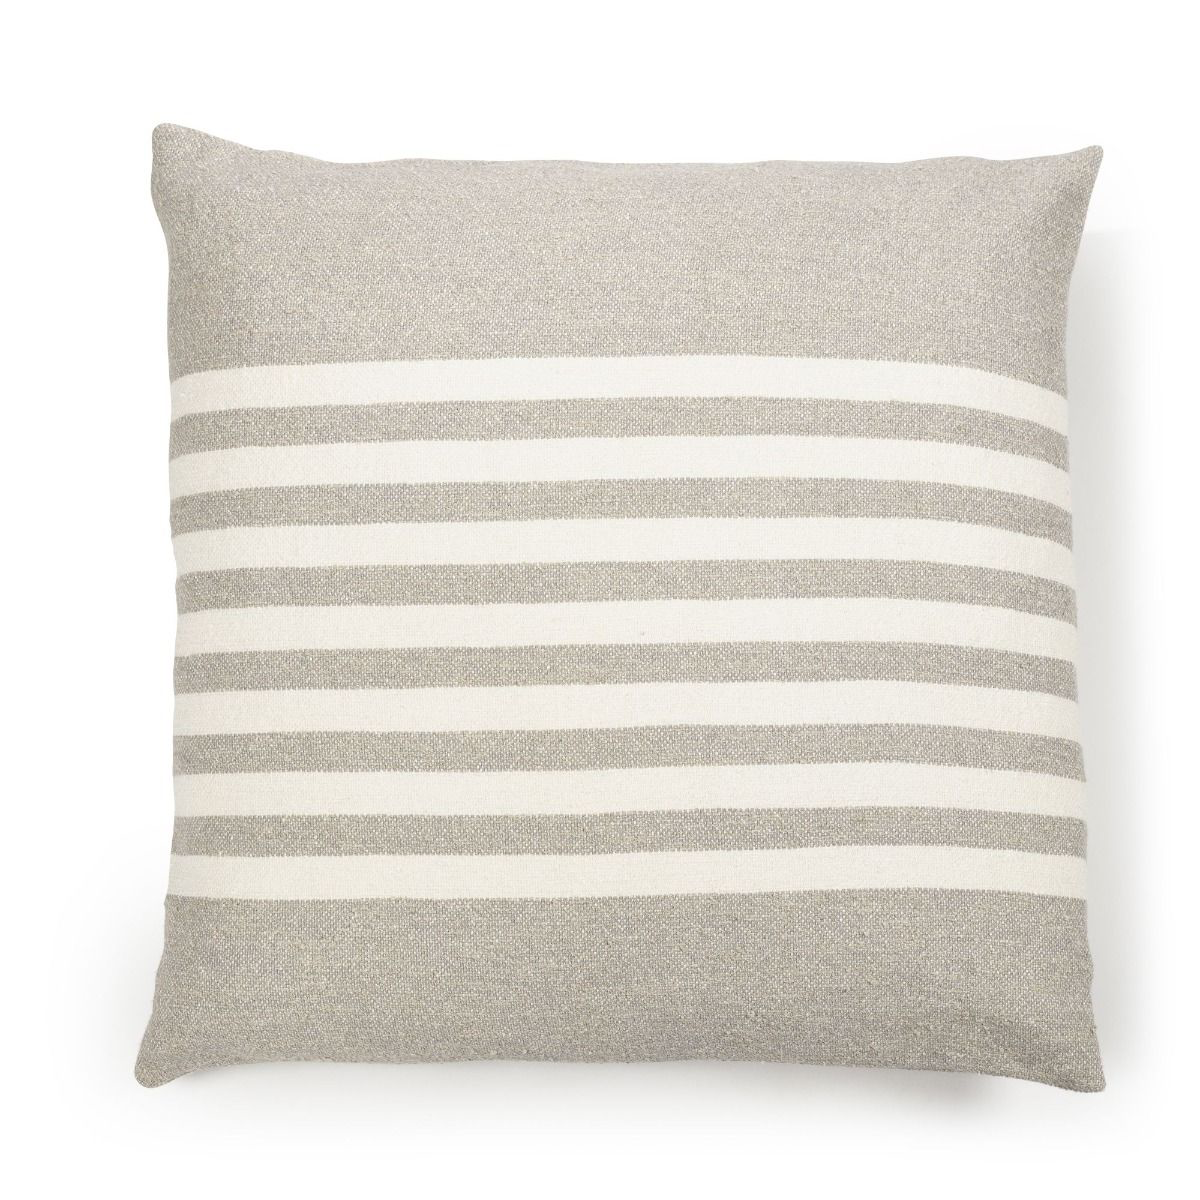 camille pillow cover, libeco, accessories | pillows and cushions, - adorn.house